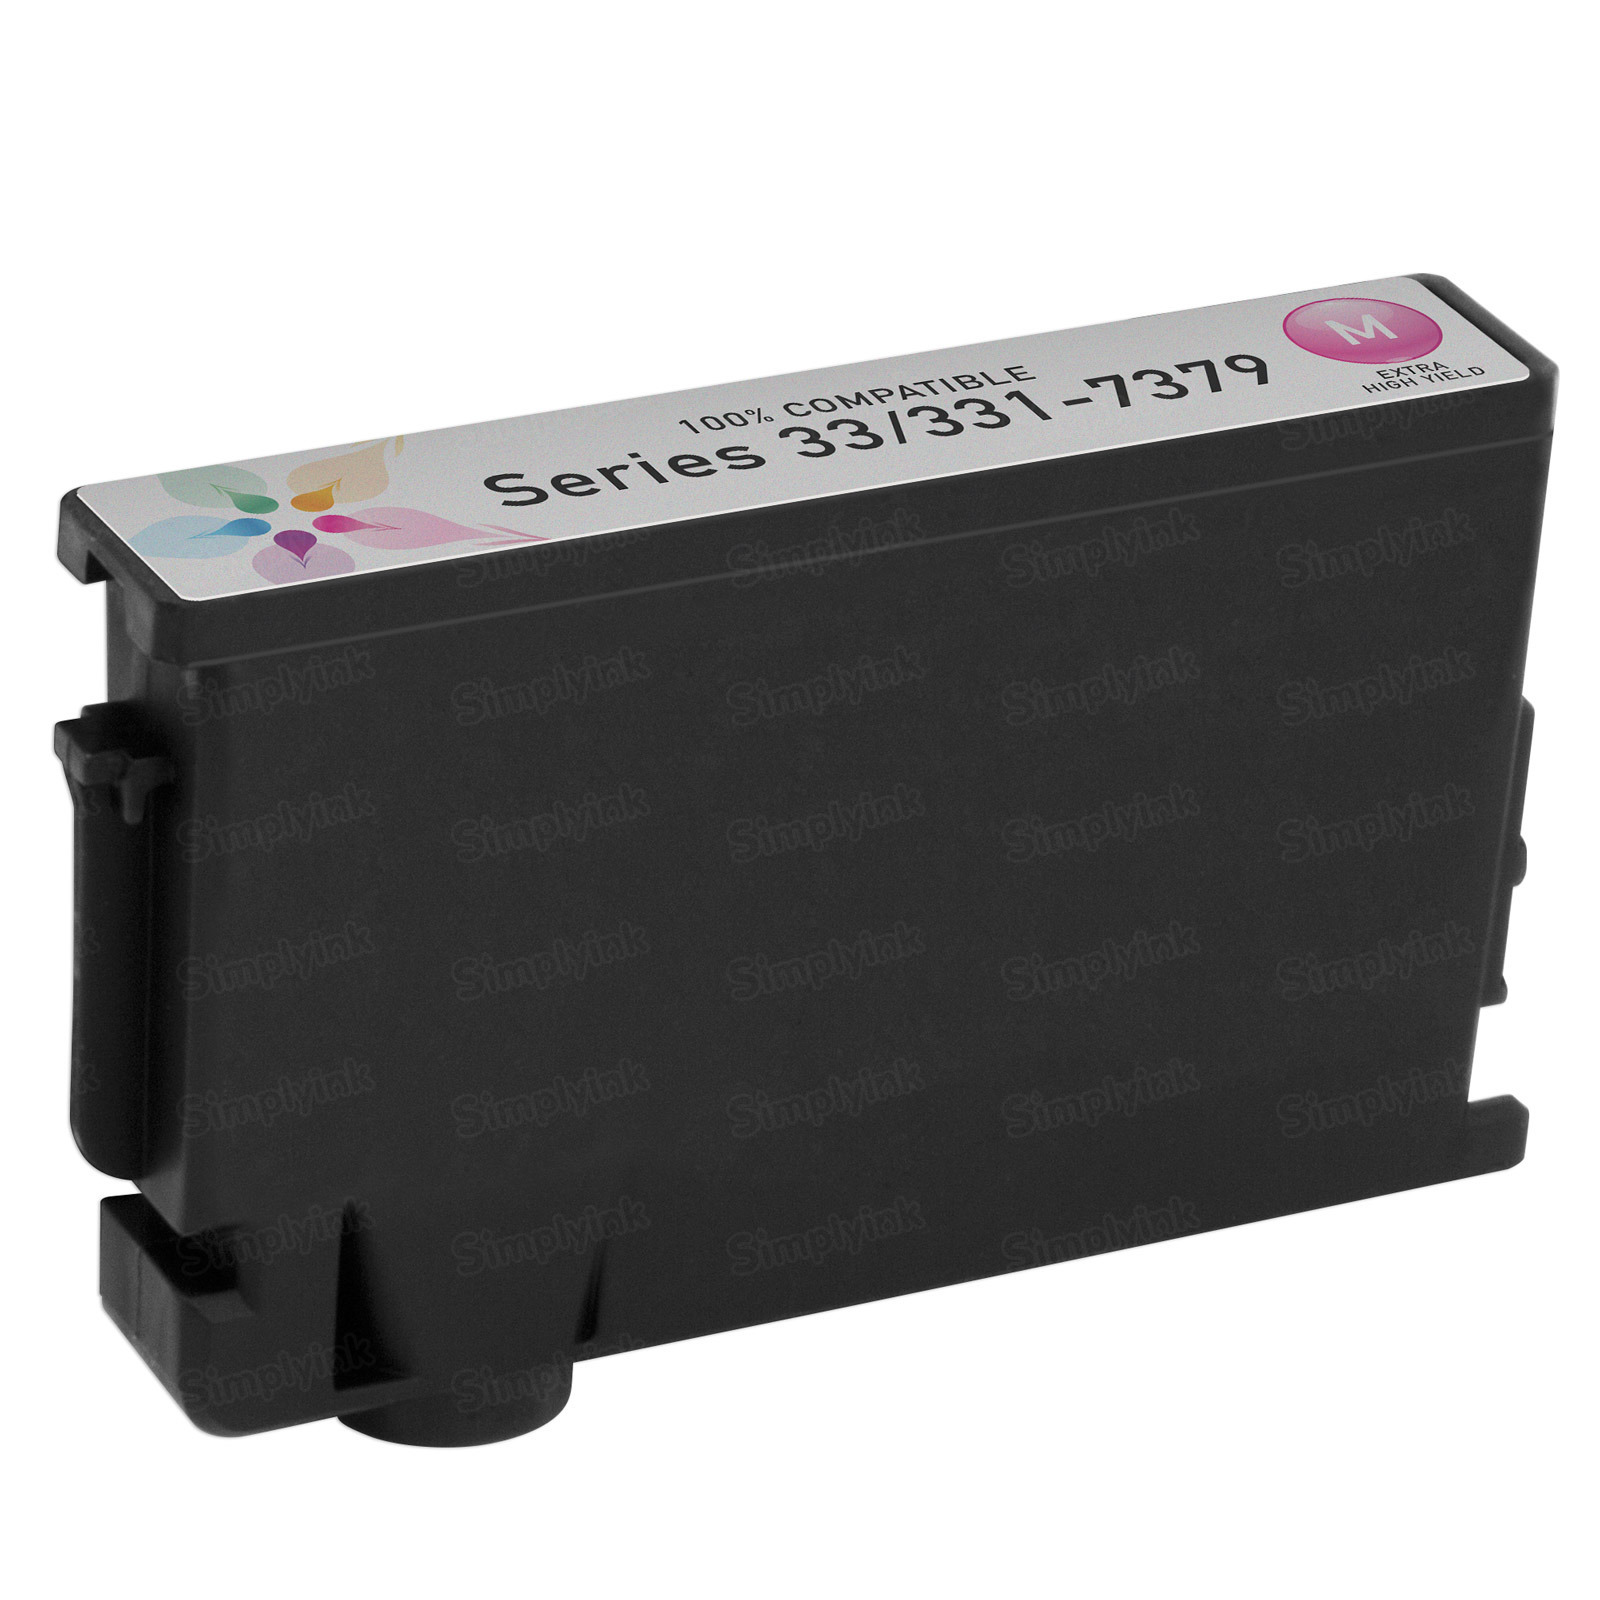 Compatible Ink Cartridge for Dell 331-7379 Extra HY Magenta Series 33